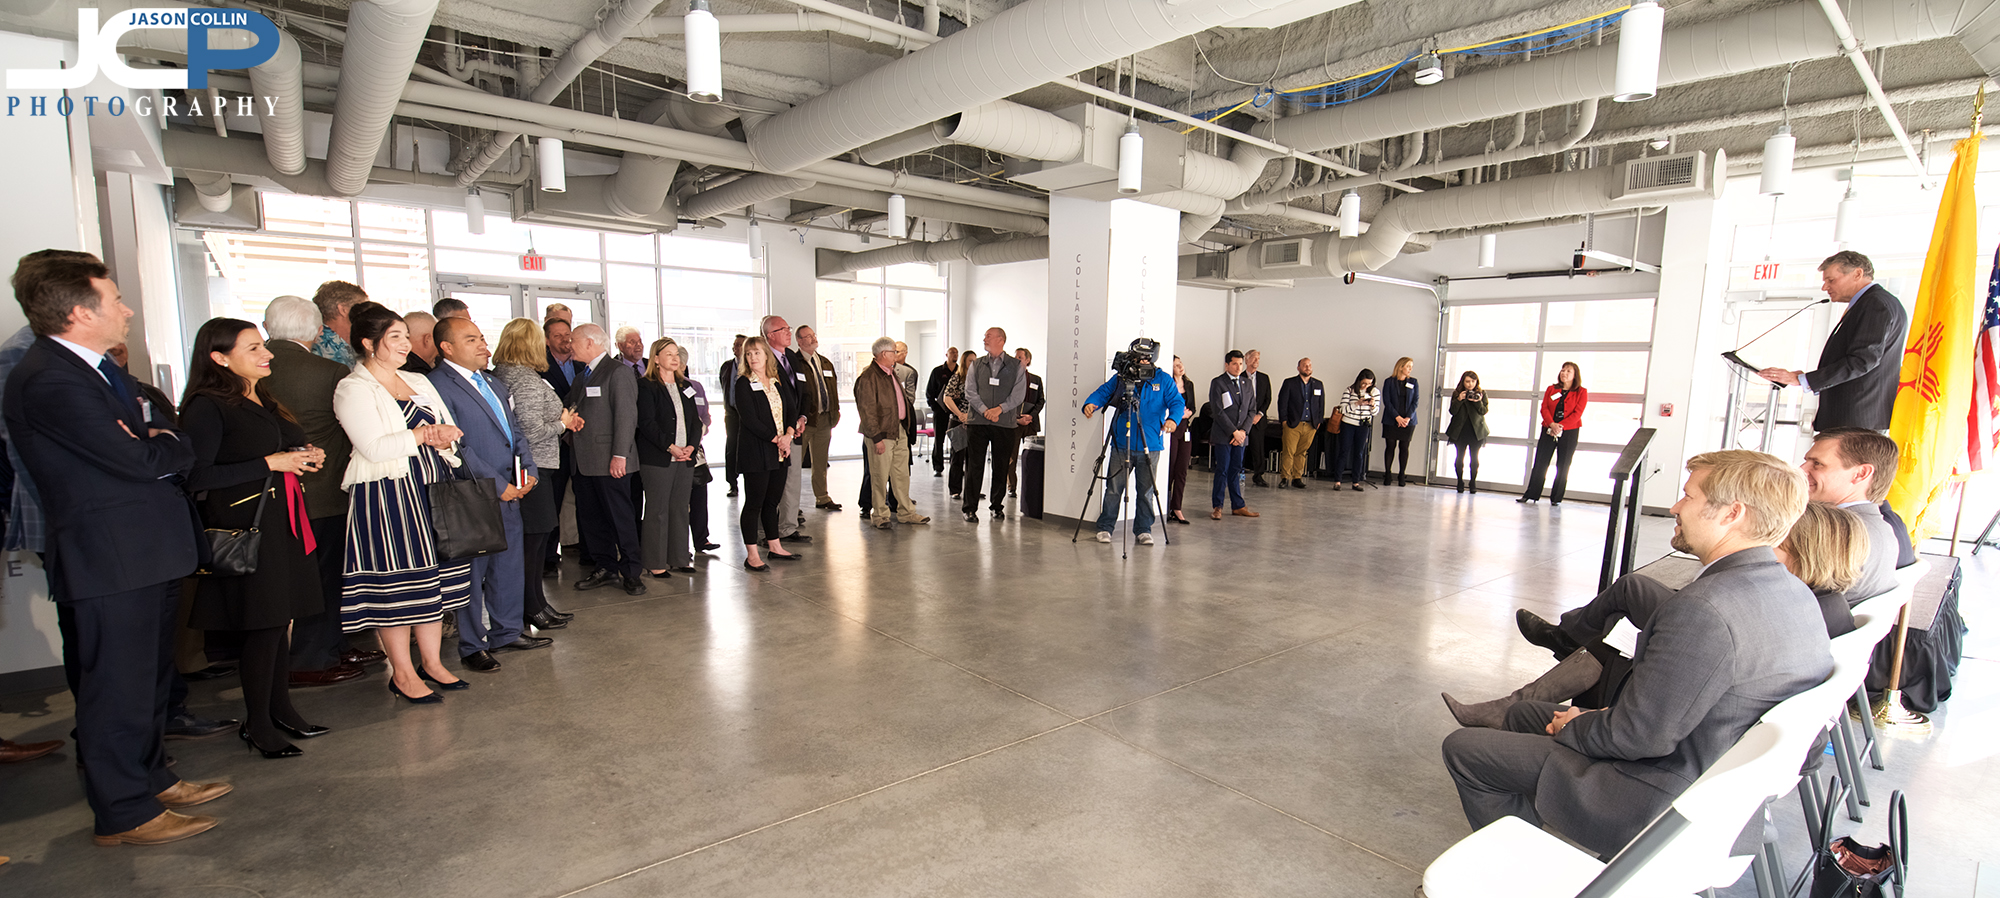 A large crowd on hand for the grand opening speeches at General Atomics in Albuquerque New Mexico